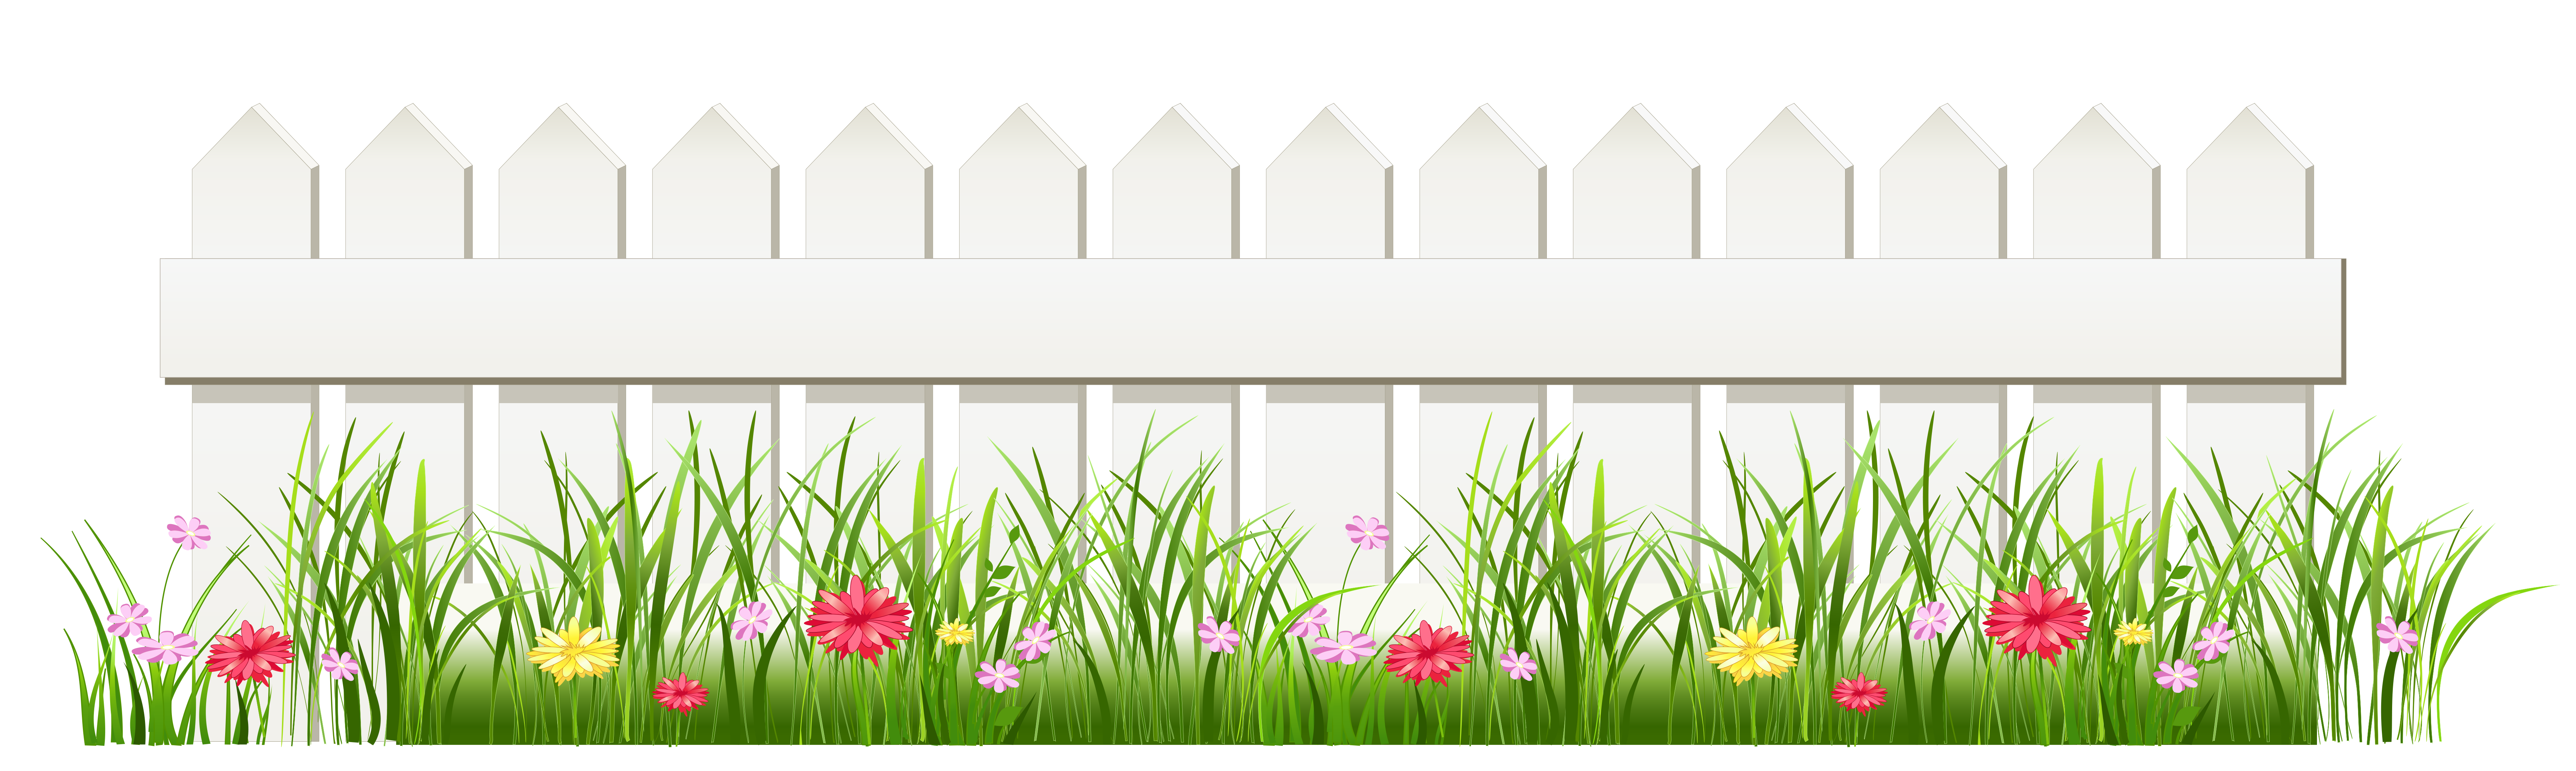 Transparent White Fence with Grass PNG Clipart White